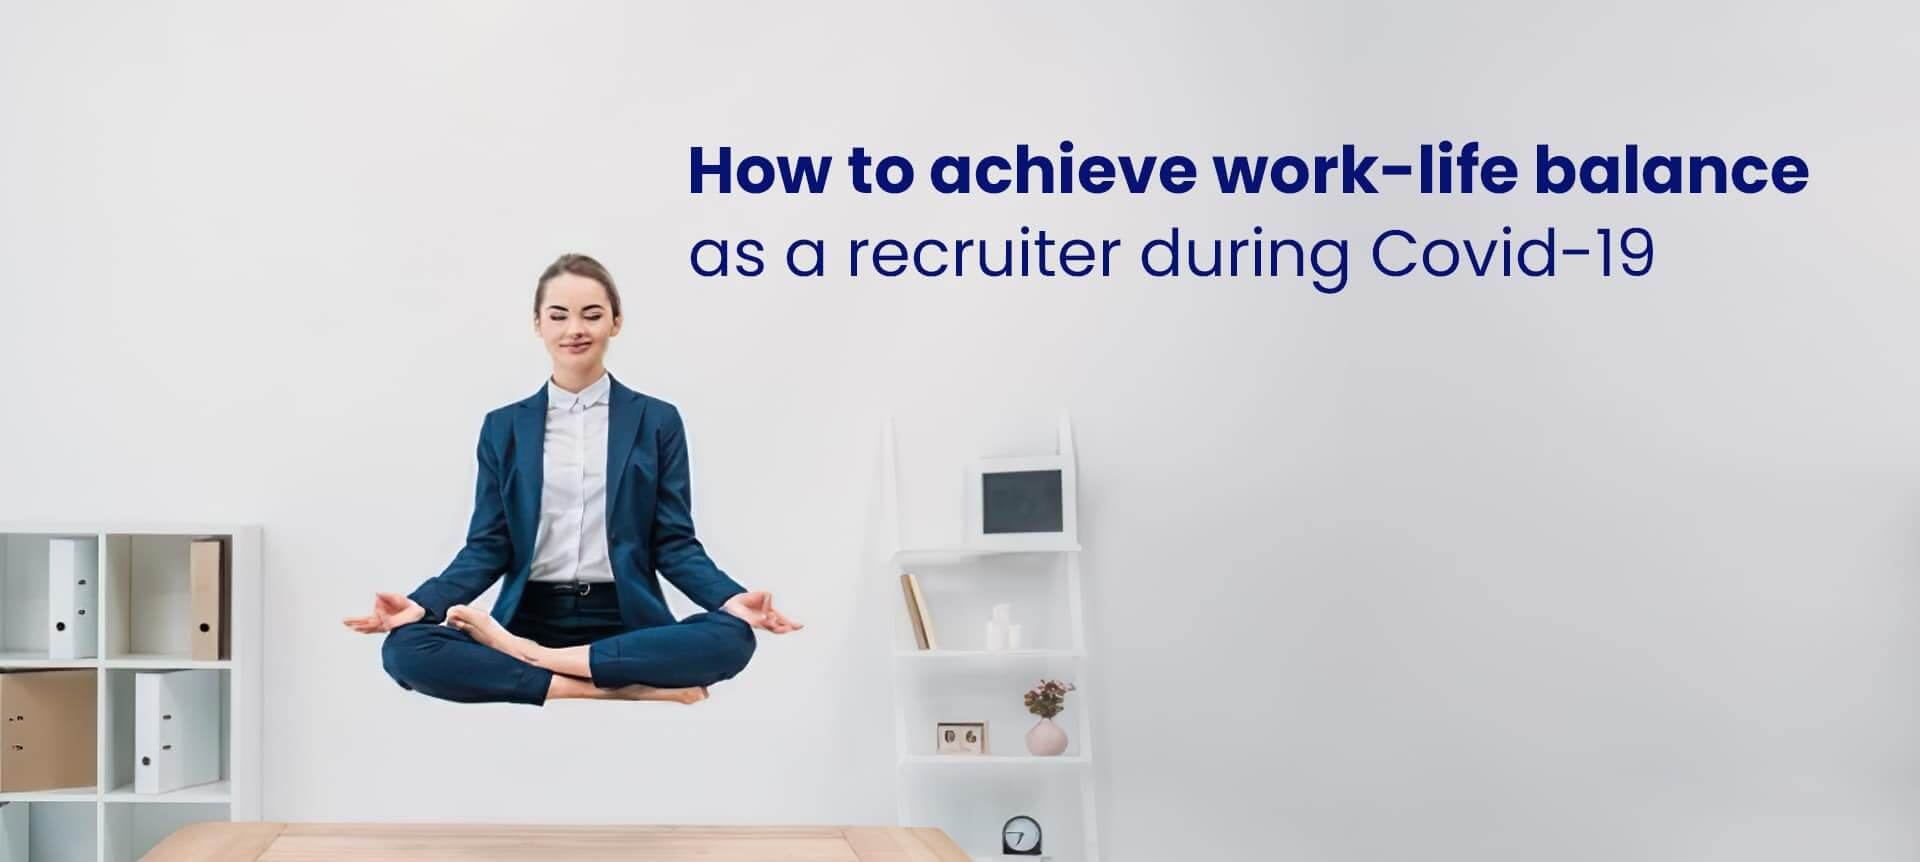 A recruiter trying to achieve work-life balance during Covid19